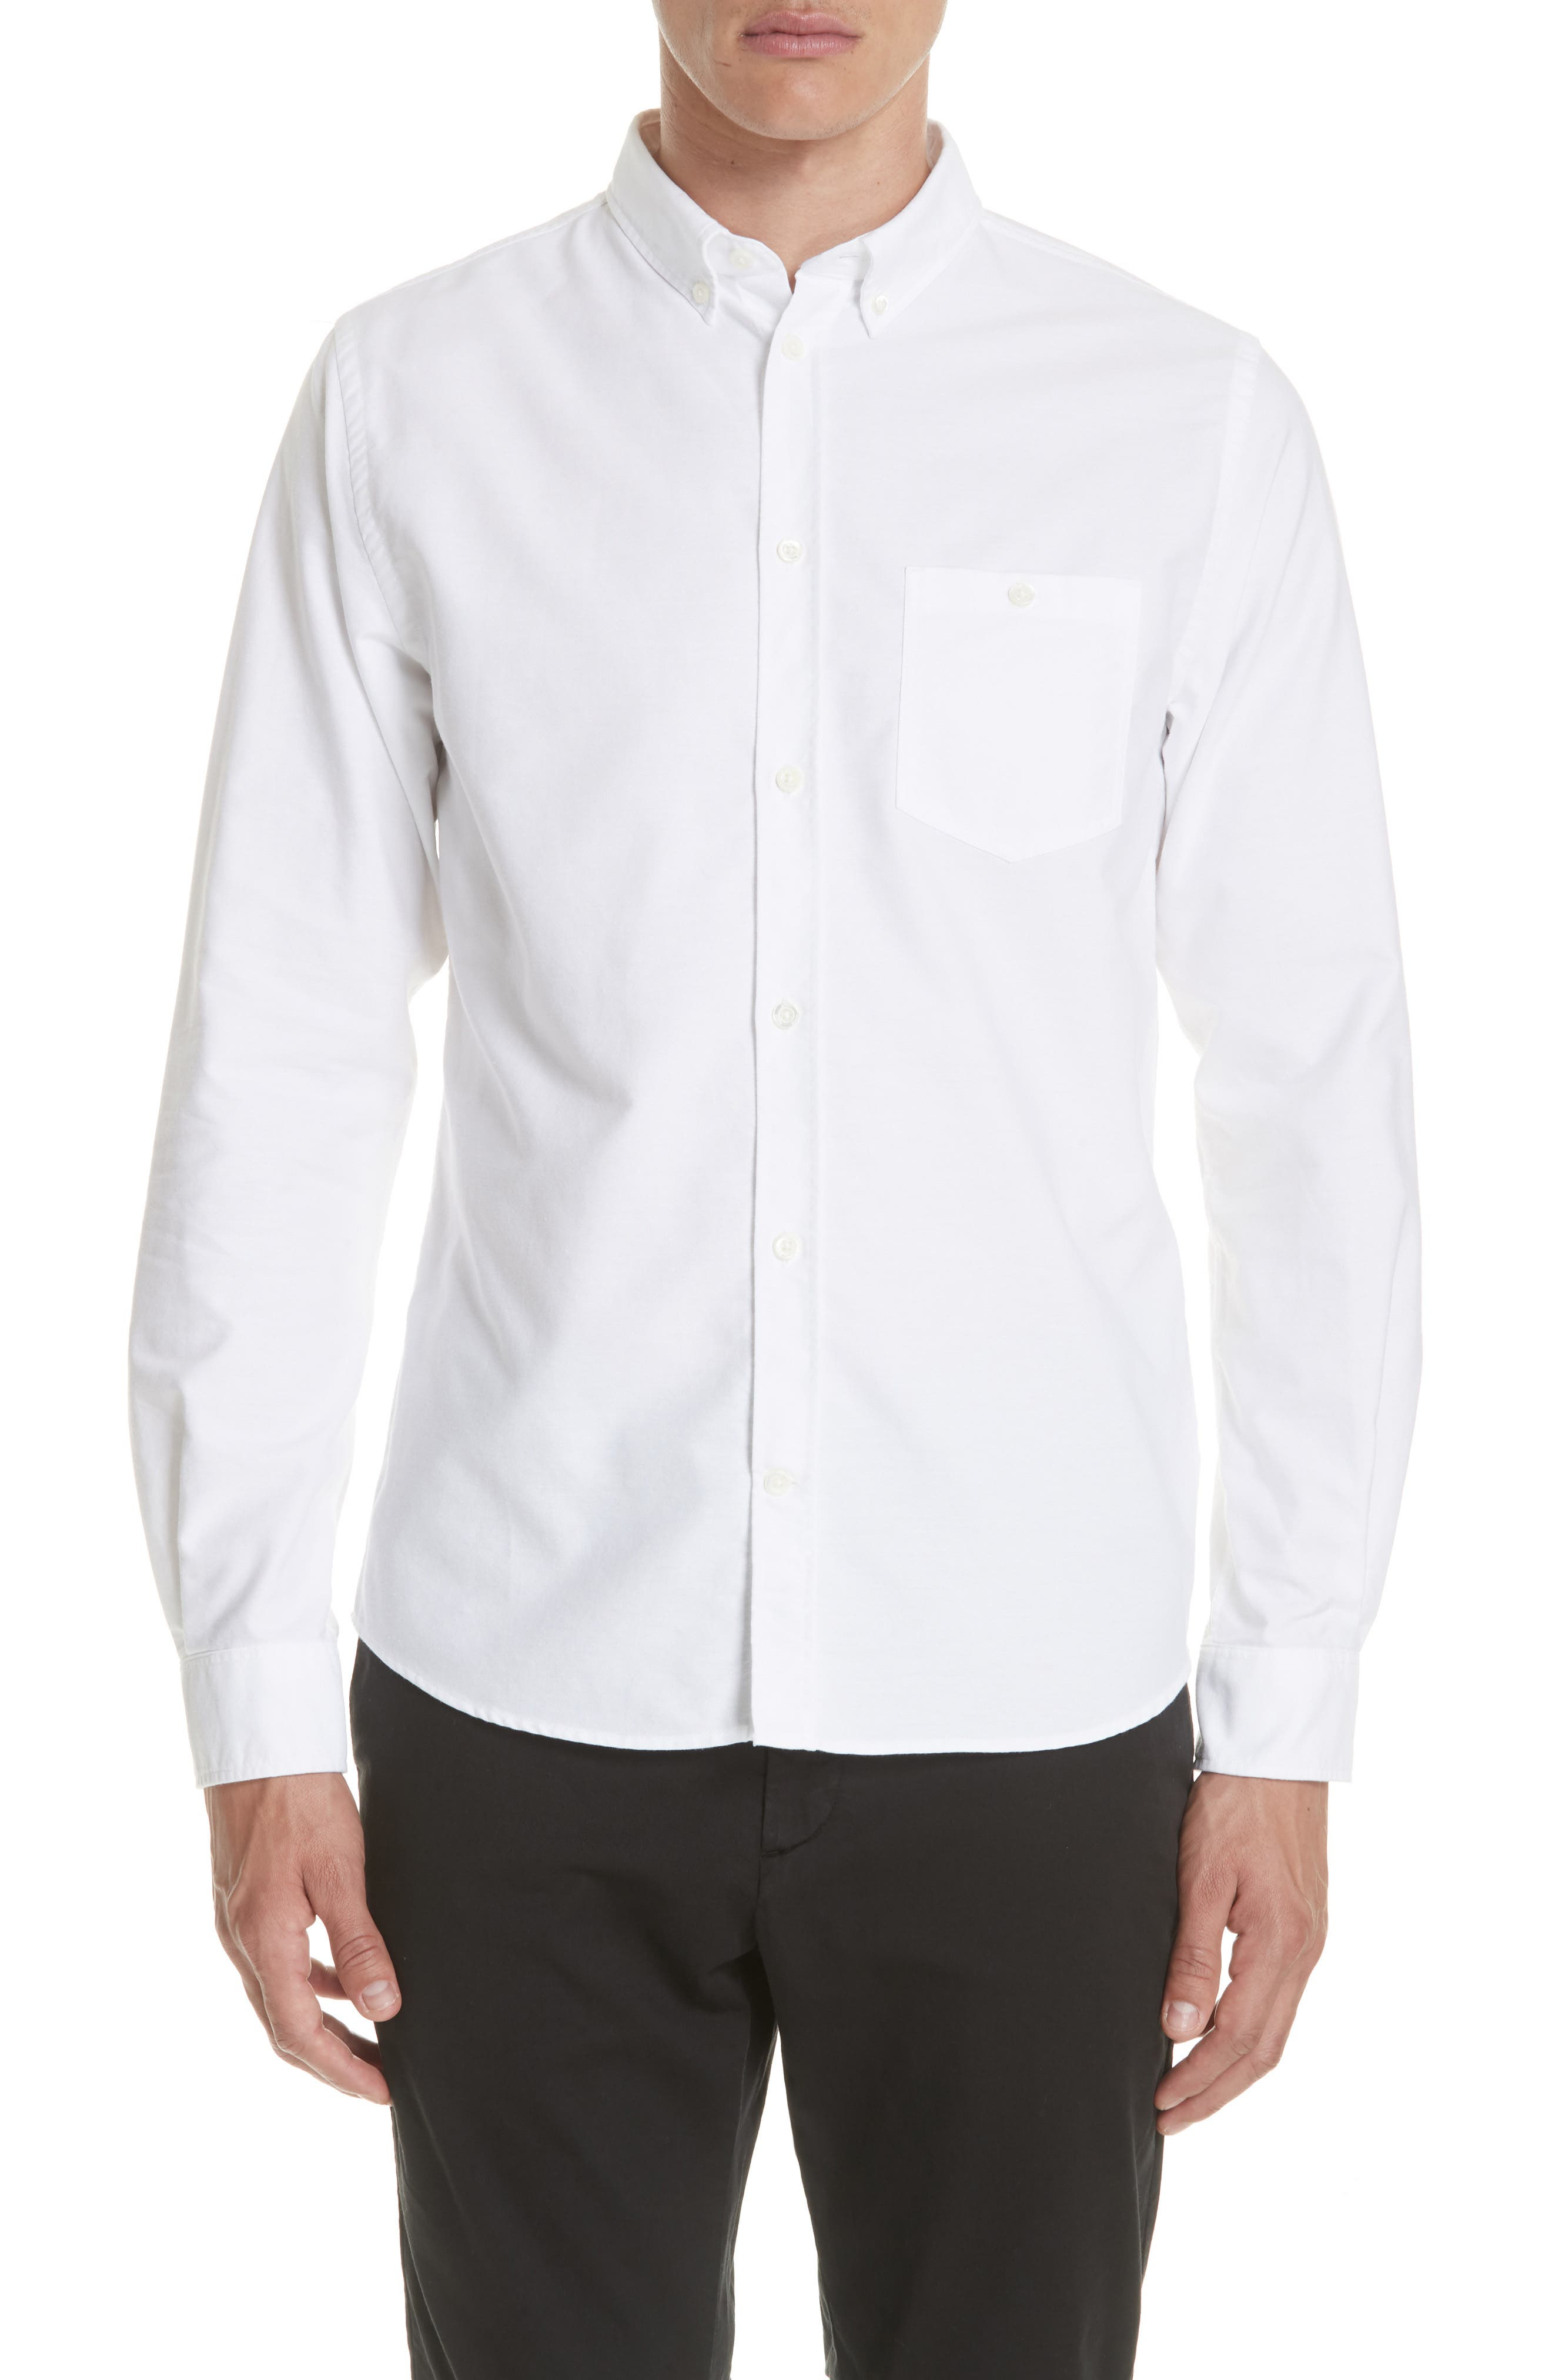 Anton Oxford Sport Shirt,                         Main,                         color, WHITE